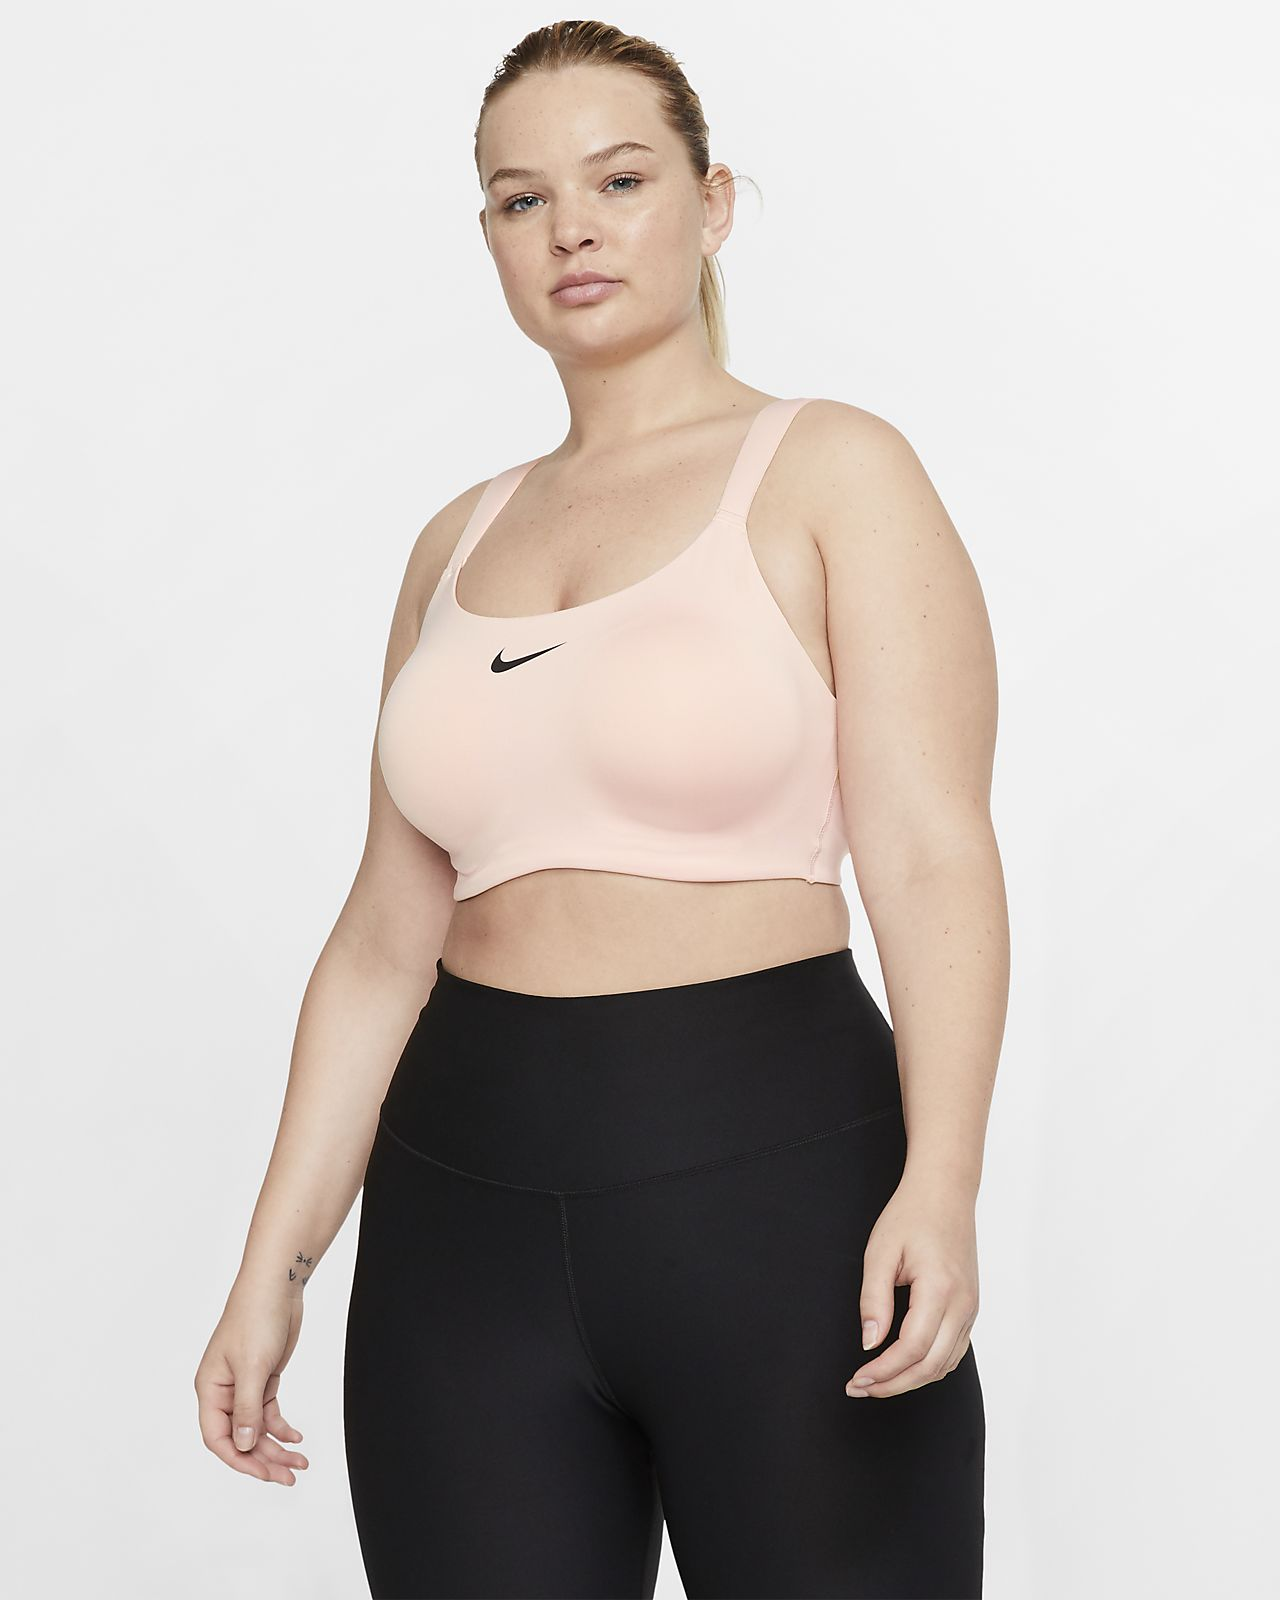 Nike Bold Women's High-Support Sports Bra (Plus Size)